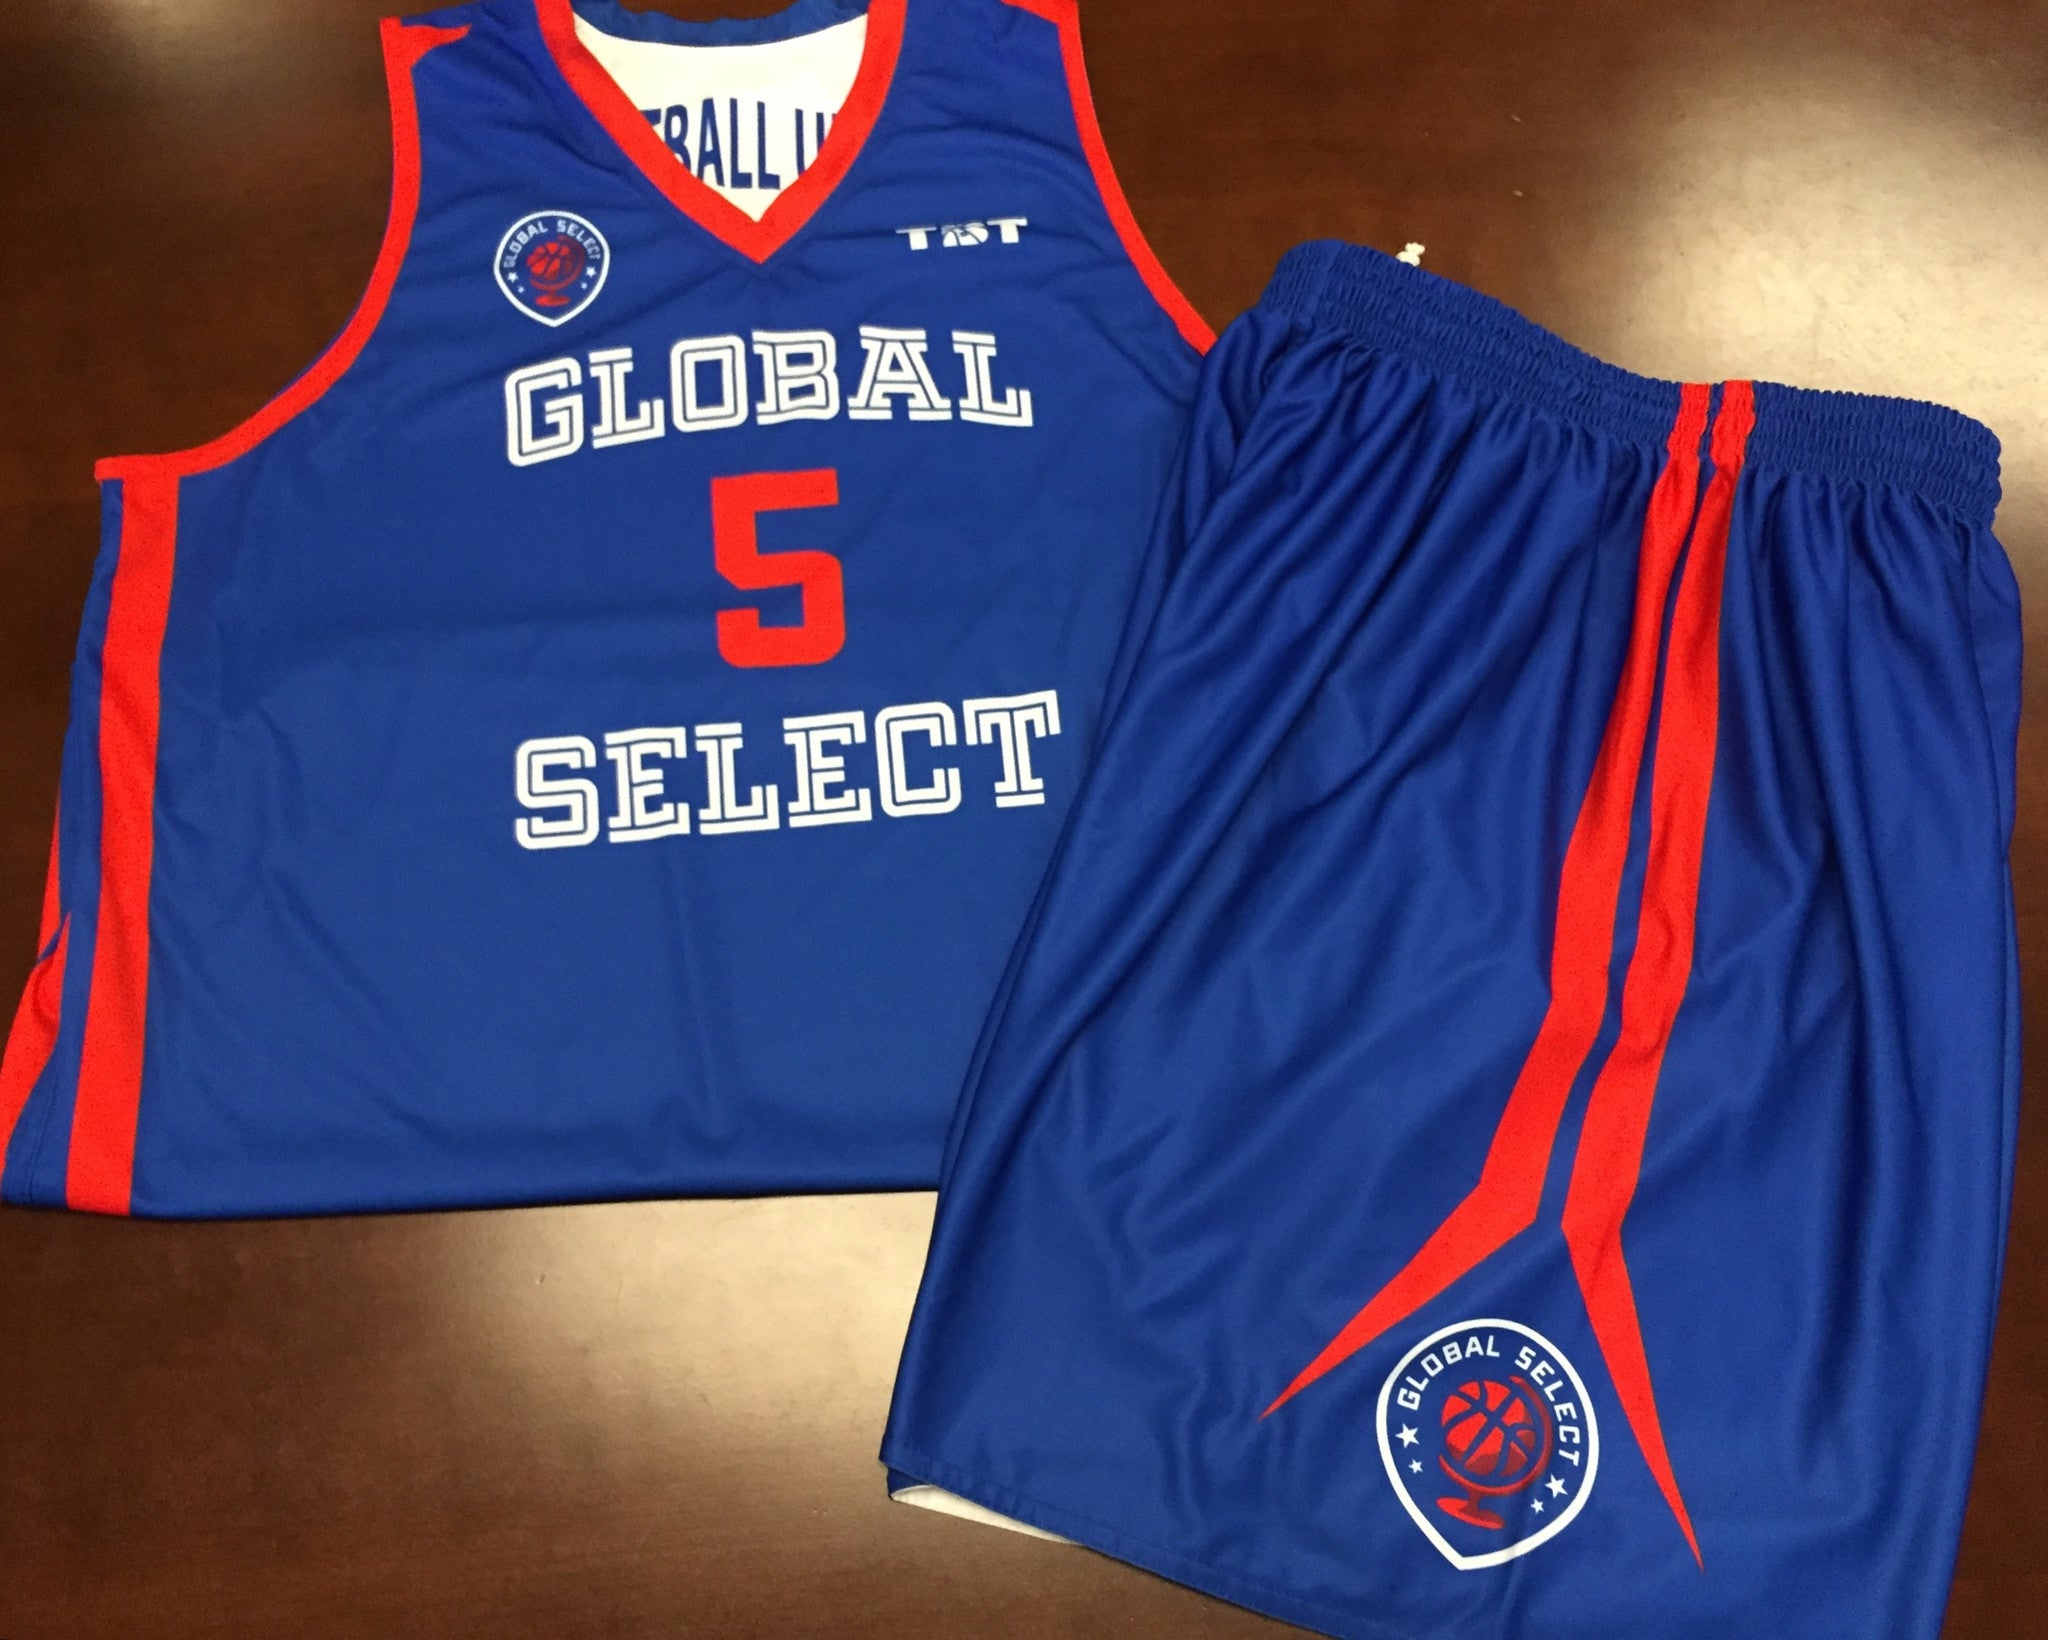 Global Select - 2015 Official Team Uniform (Jersey & Shorts sold separately)